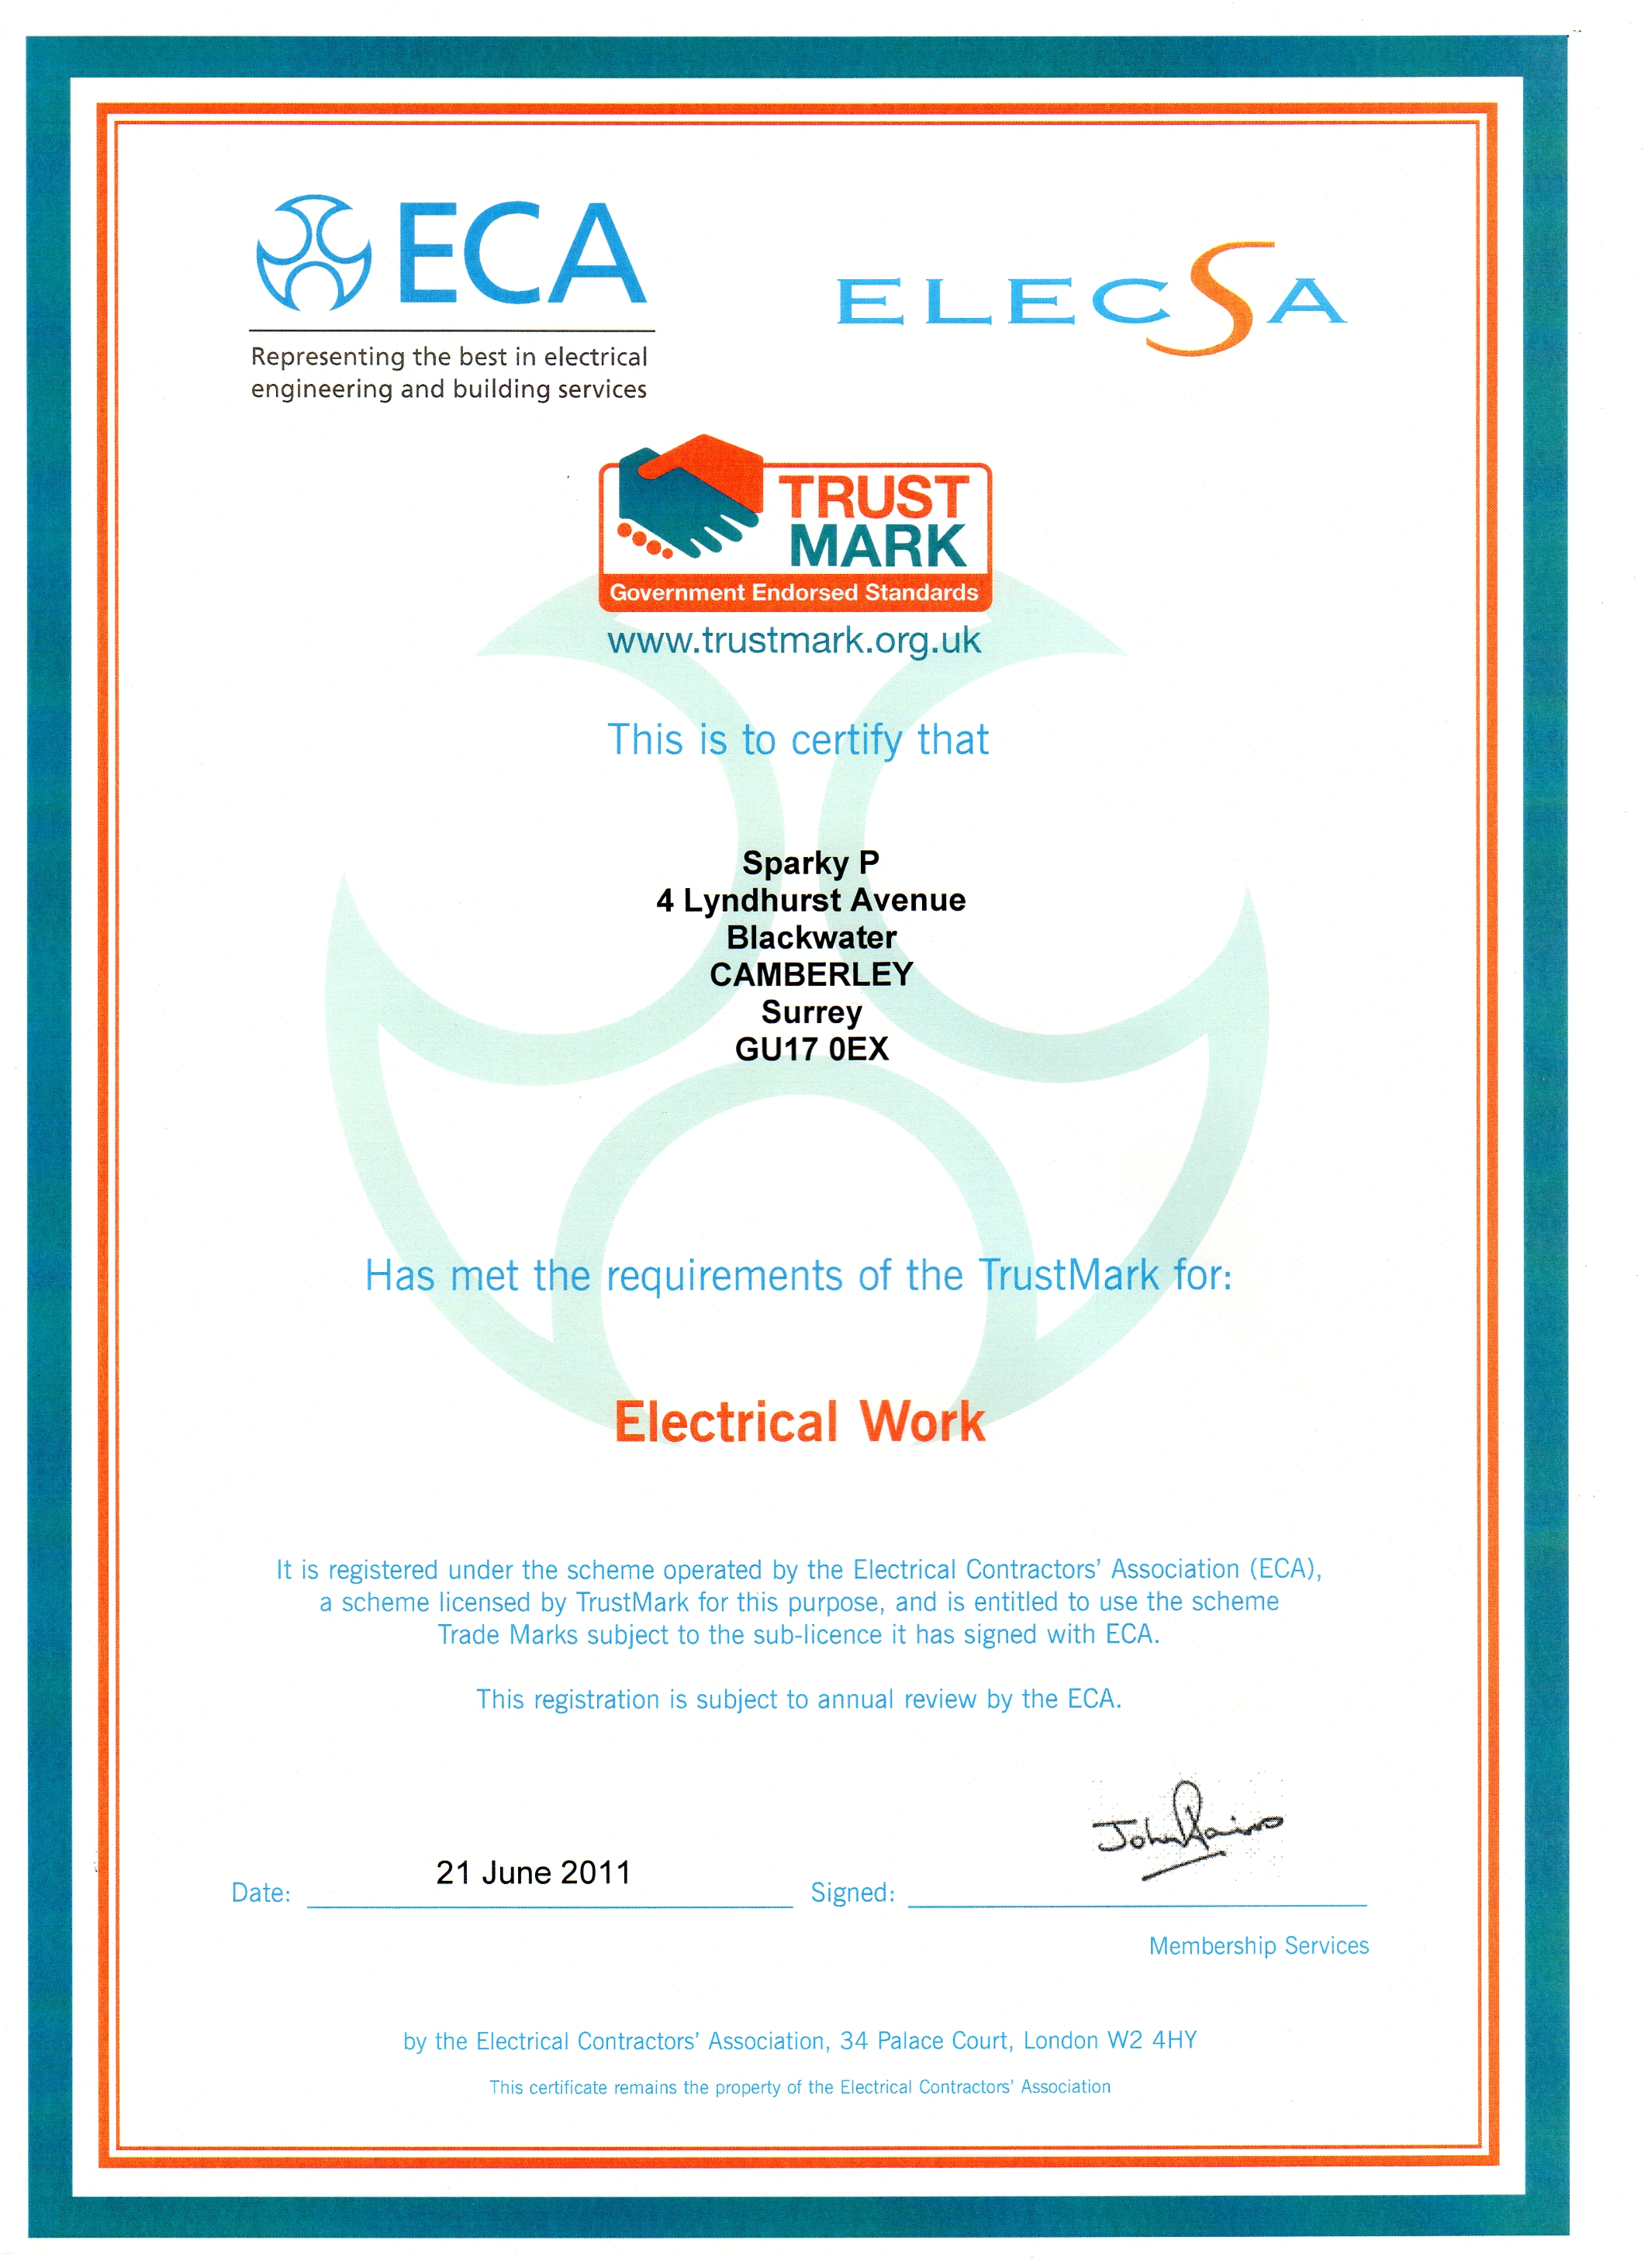 Sparky p electrician qualifications camberley contact details sparky p domestic electrician camberley give us a call 07539 545841 or emailtimsparkyp xflitez Image collections